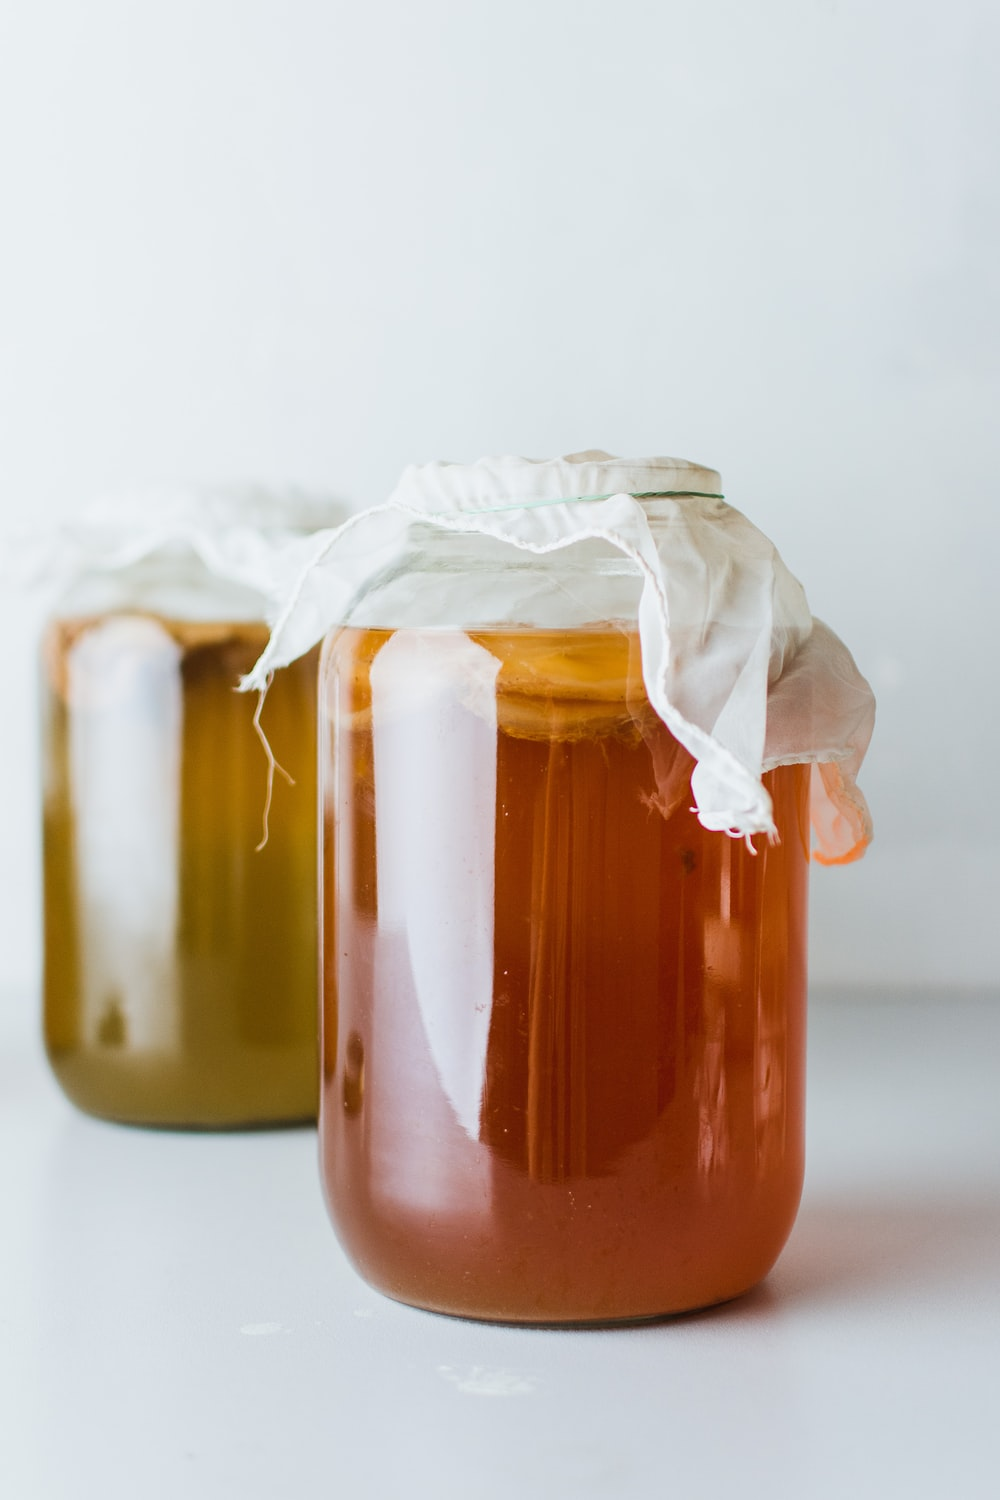 two mason jars filled with liquid on white surface